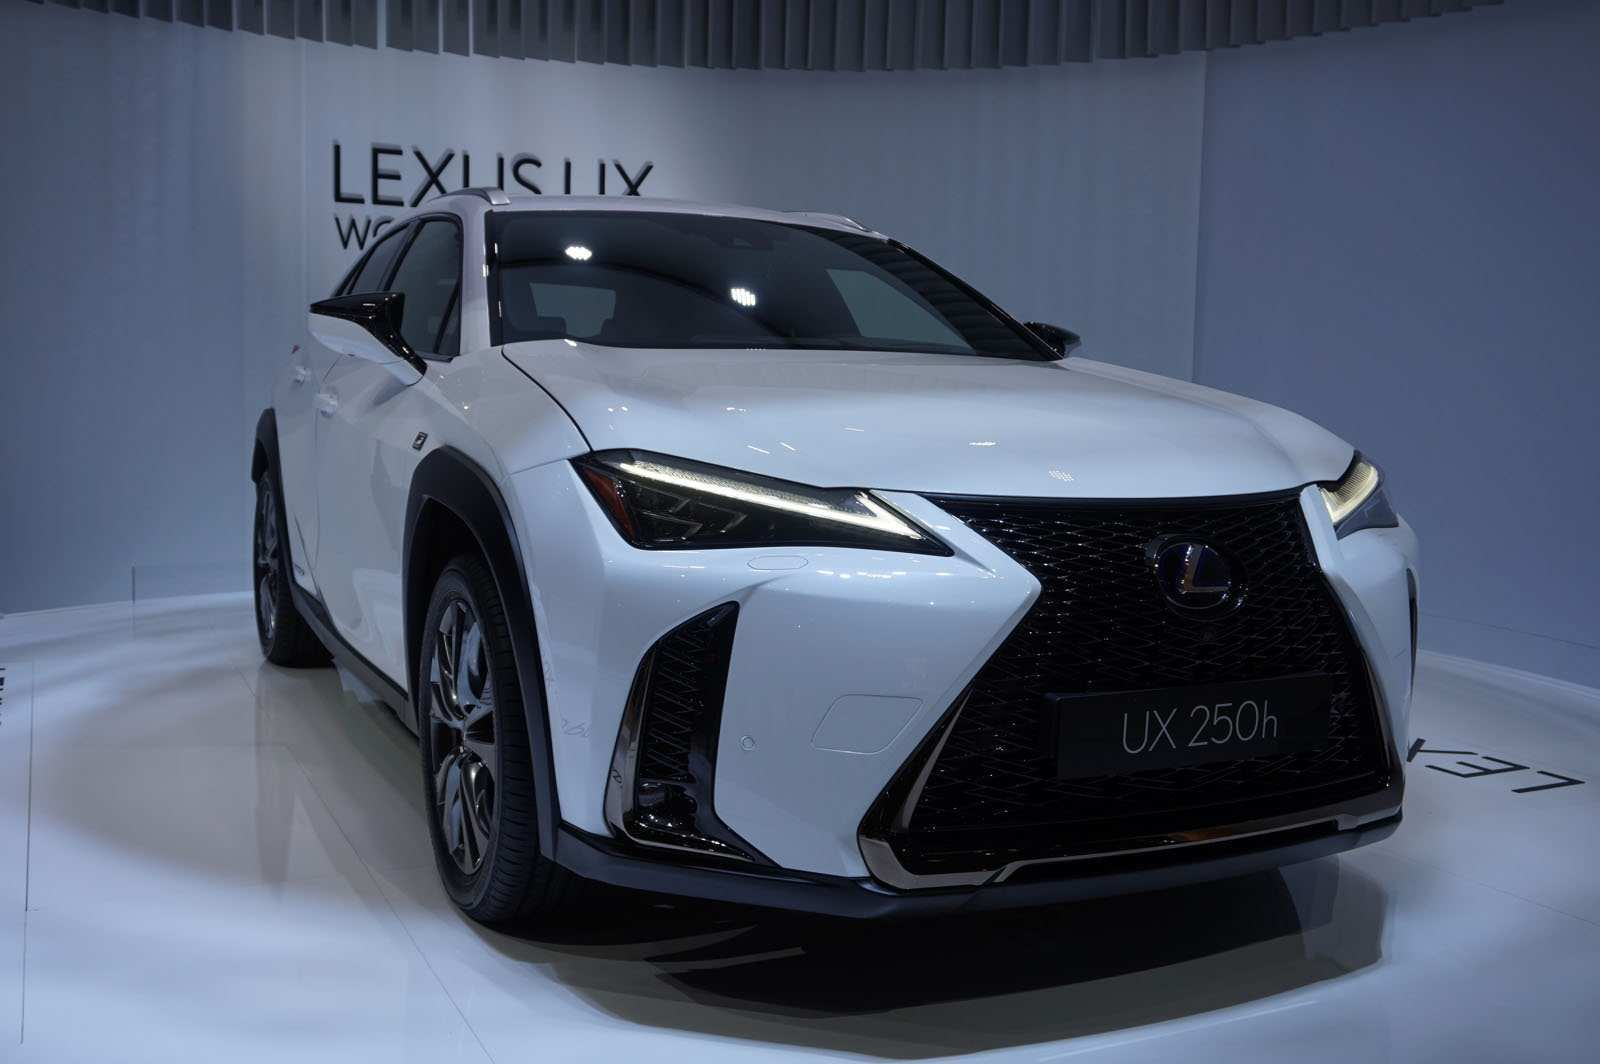 44 New Lexus 2019 Us Redesign And Concept Pictures for Lexus 2019 Us Redesign And Concept